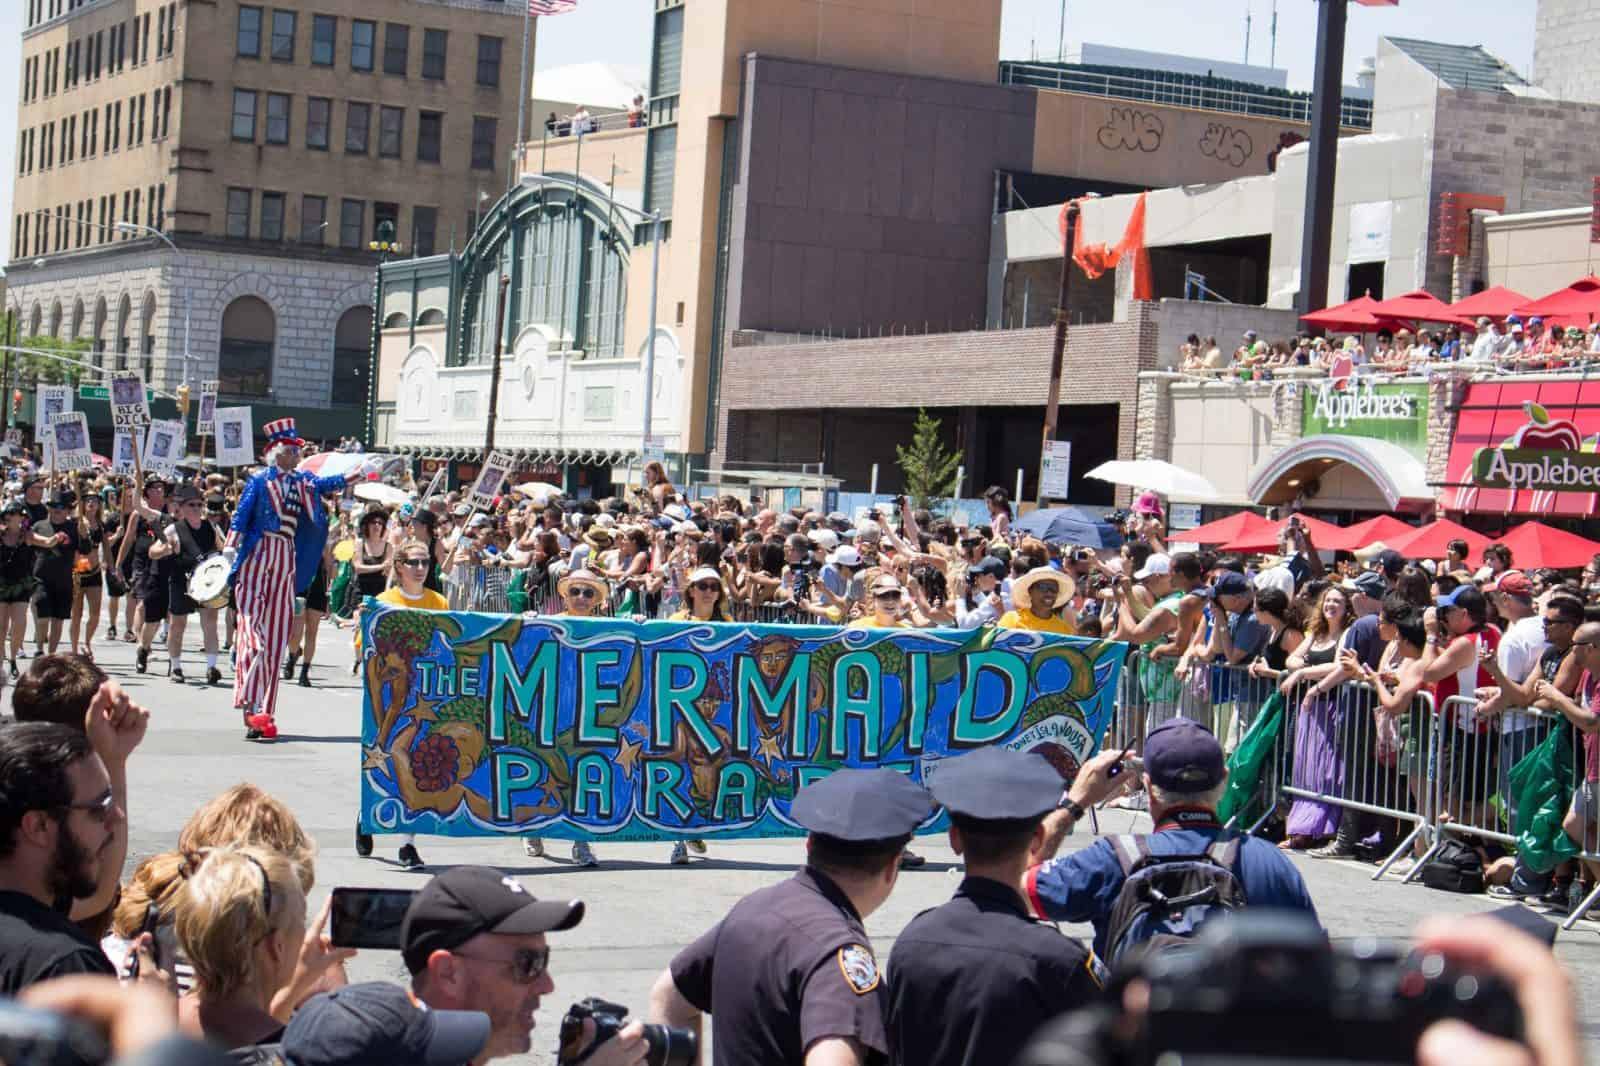 The 2014 Mermaid Parade on Coney Island in New York [NSFW]